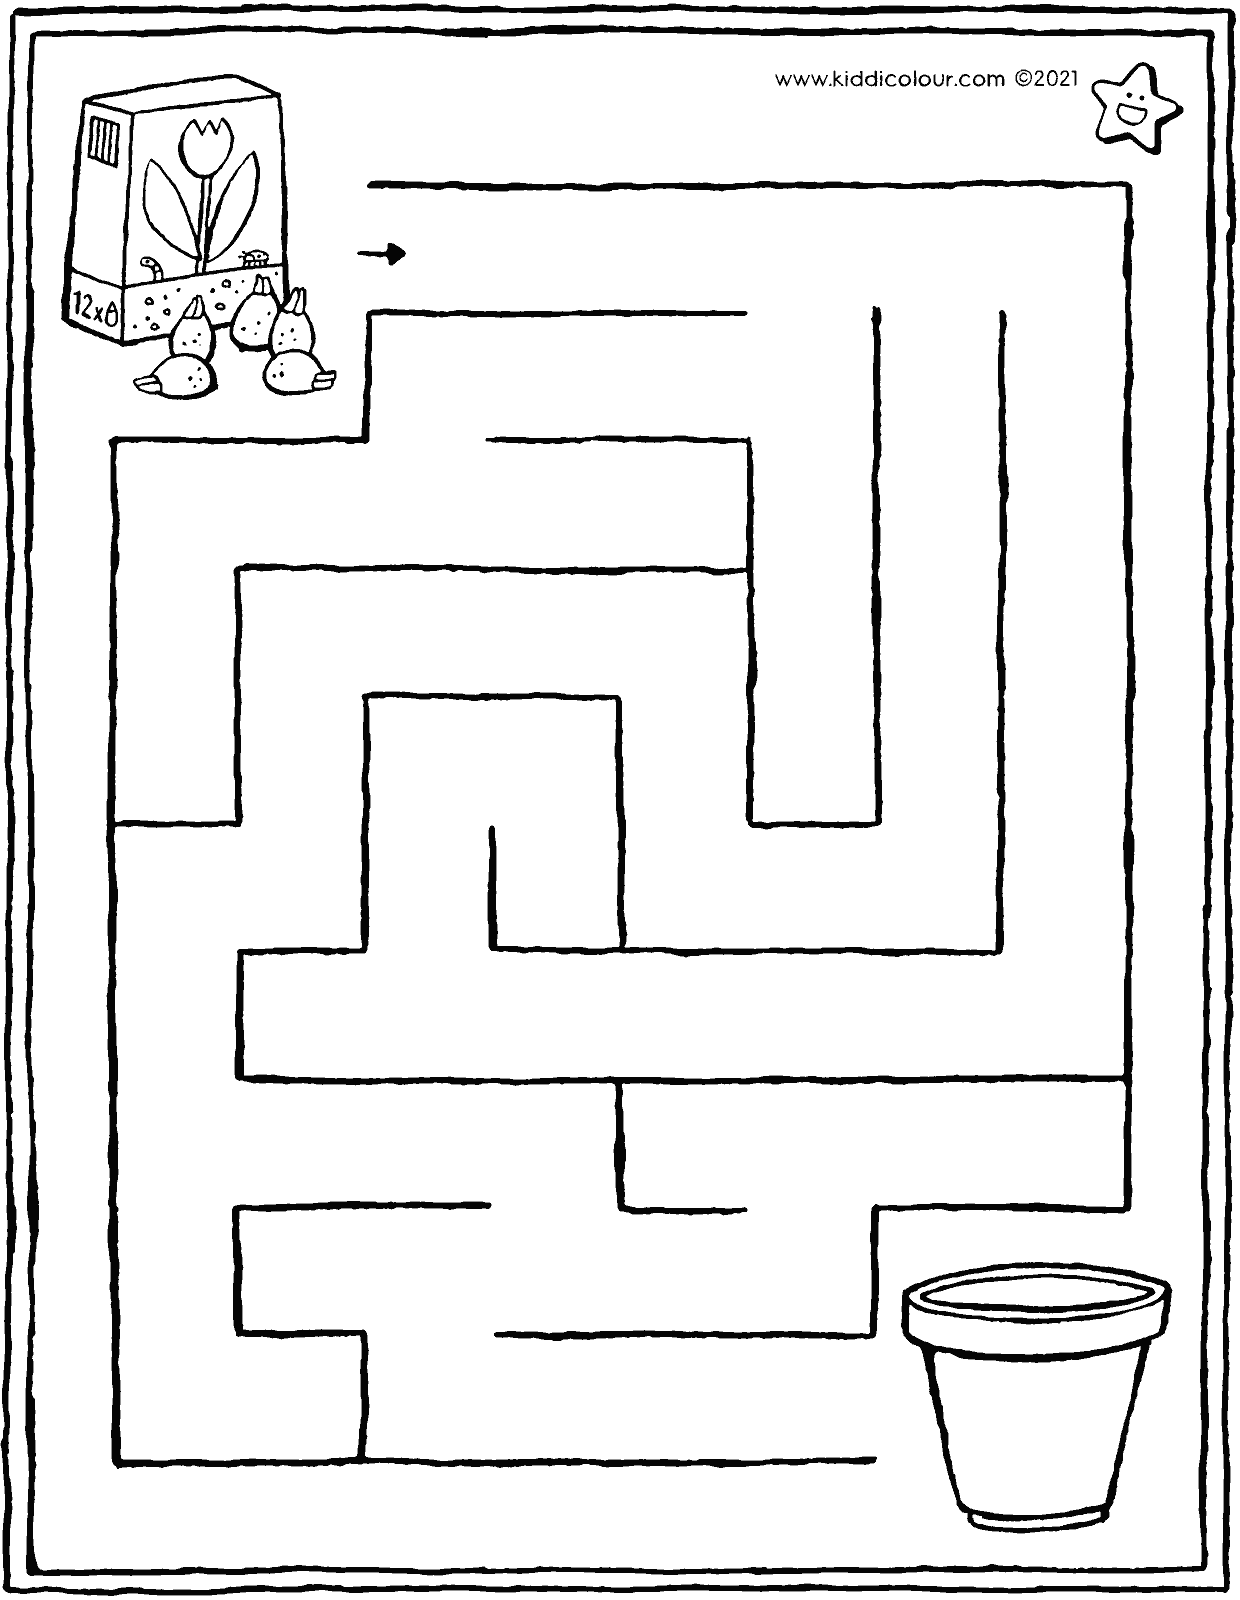 maze - bring the bulbs to the flowerpot colouring page drawing picture 01V